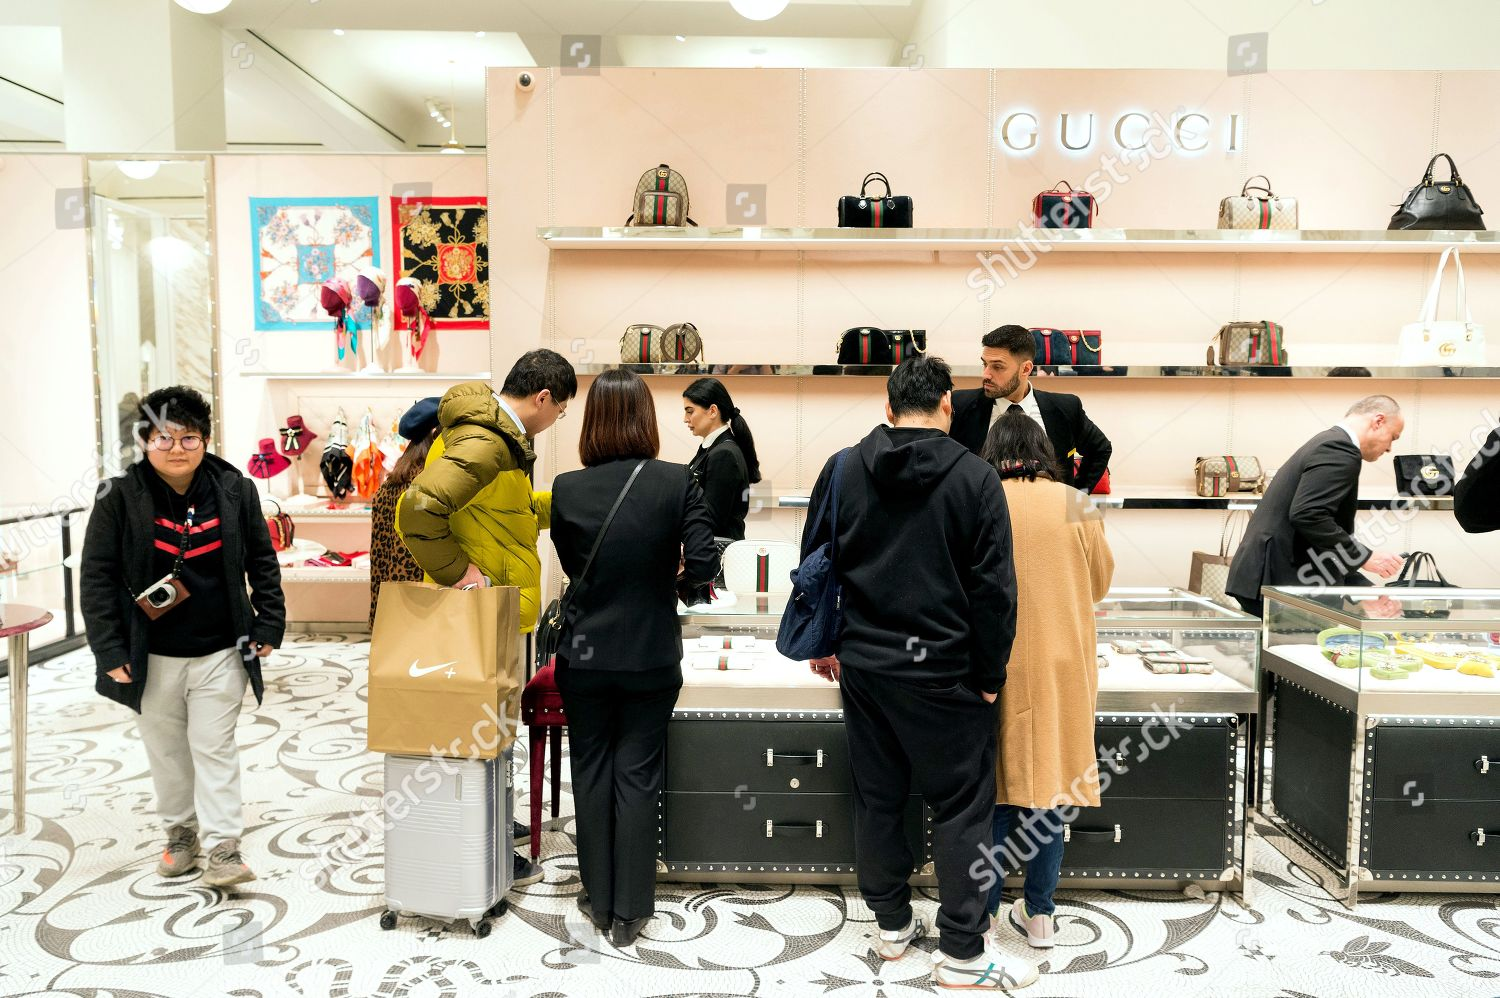 8c21fc33562 Shoppers inside Gucci concession store Selfridges Boxing Editorial ...